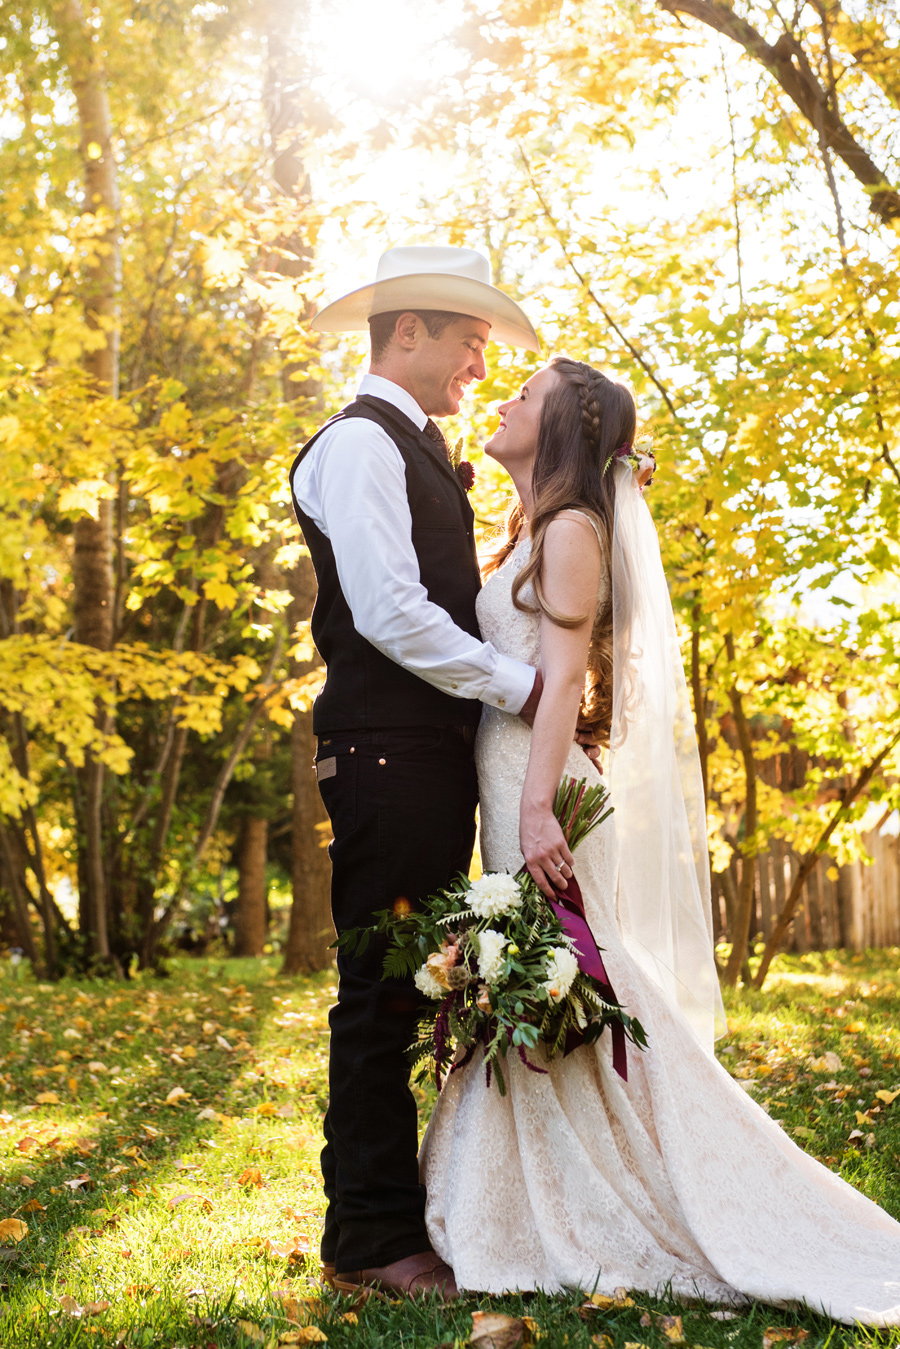 Montana Bride + Groom / Cali Frankovic Photography